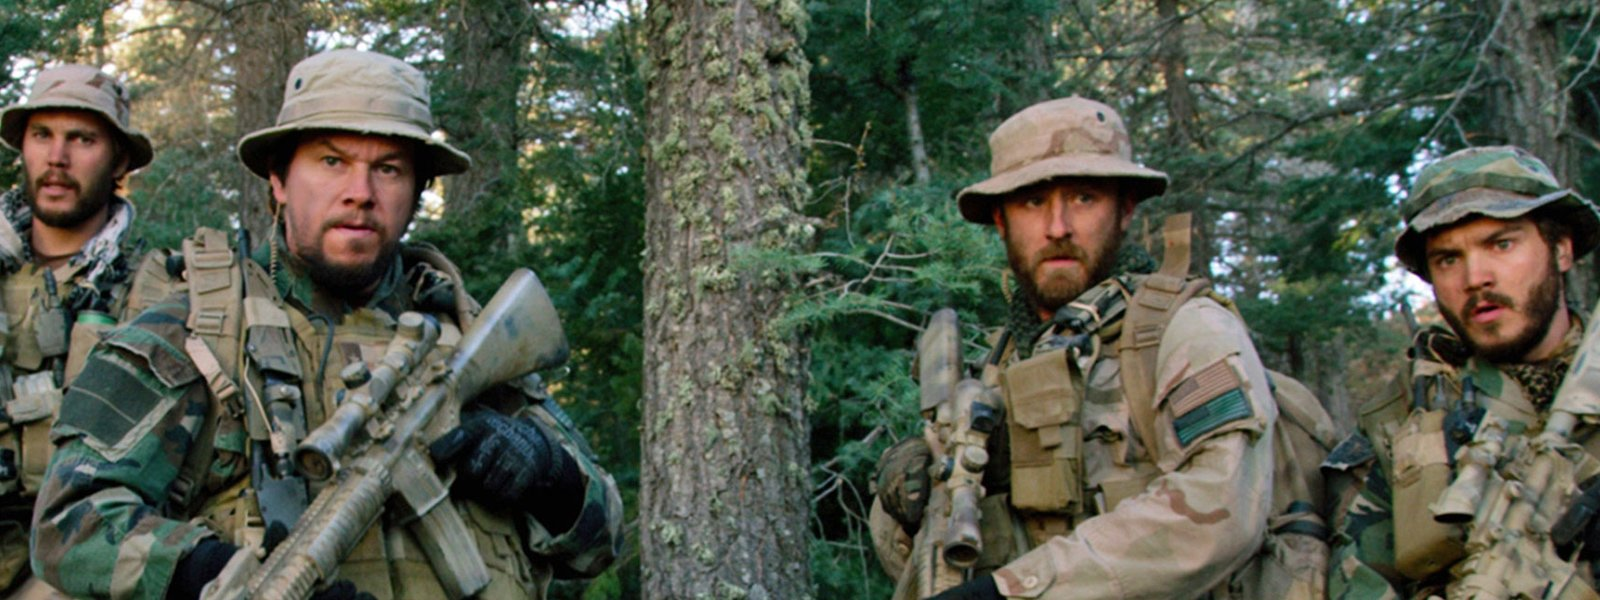 Film: Lone Survivor – Ben Oliver Lone Survivor Movie Filming